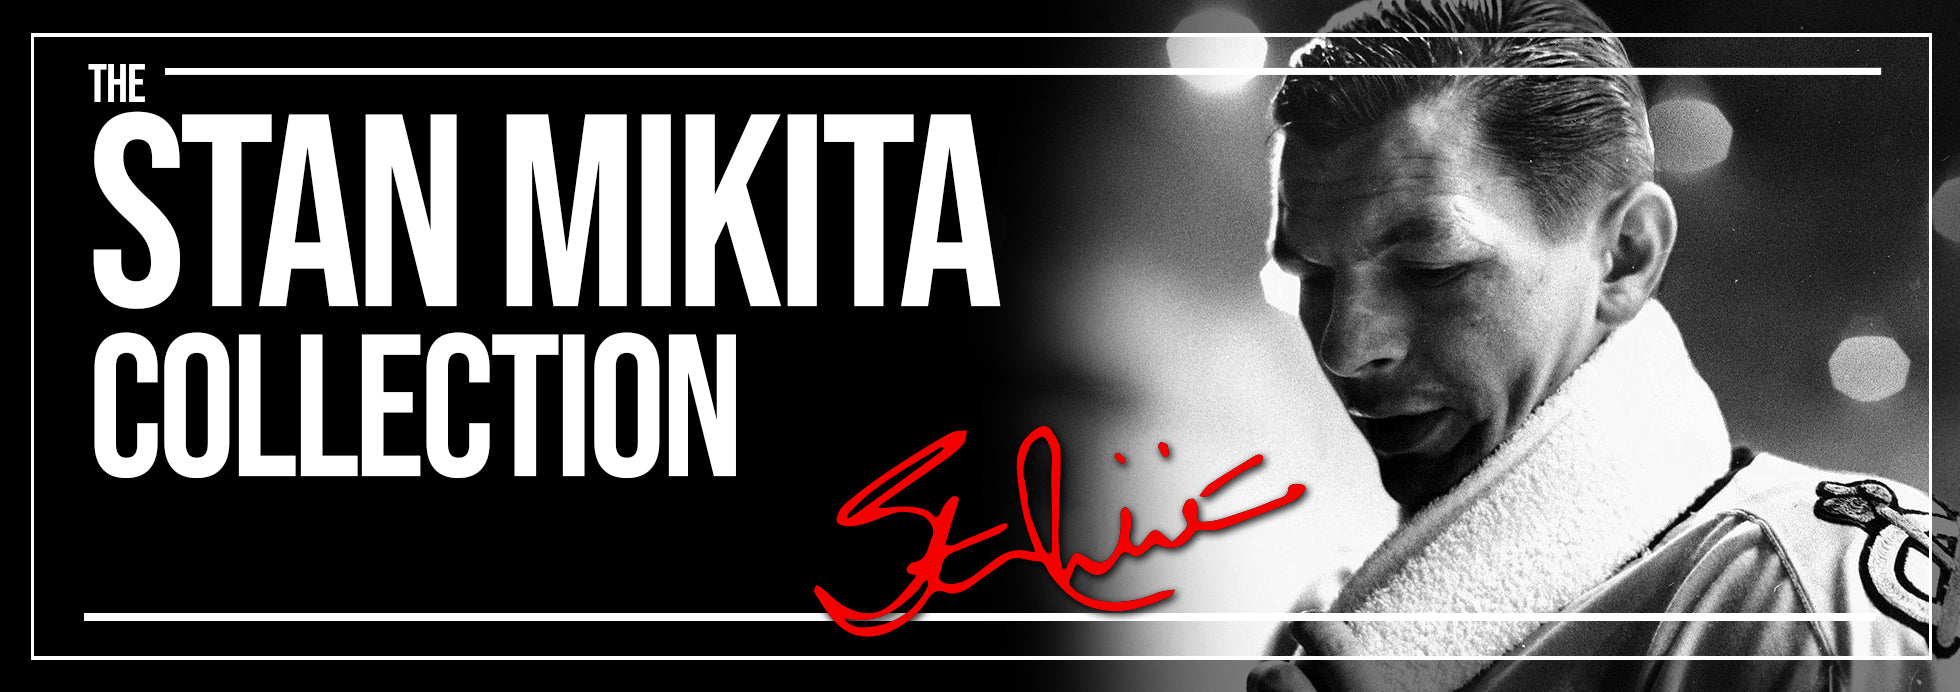 Stan Mikita Collection Banner